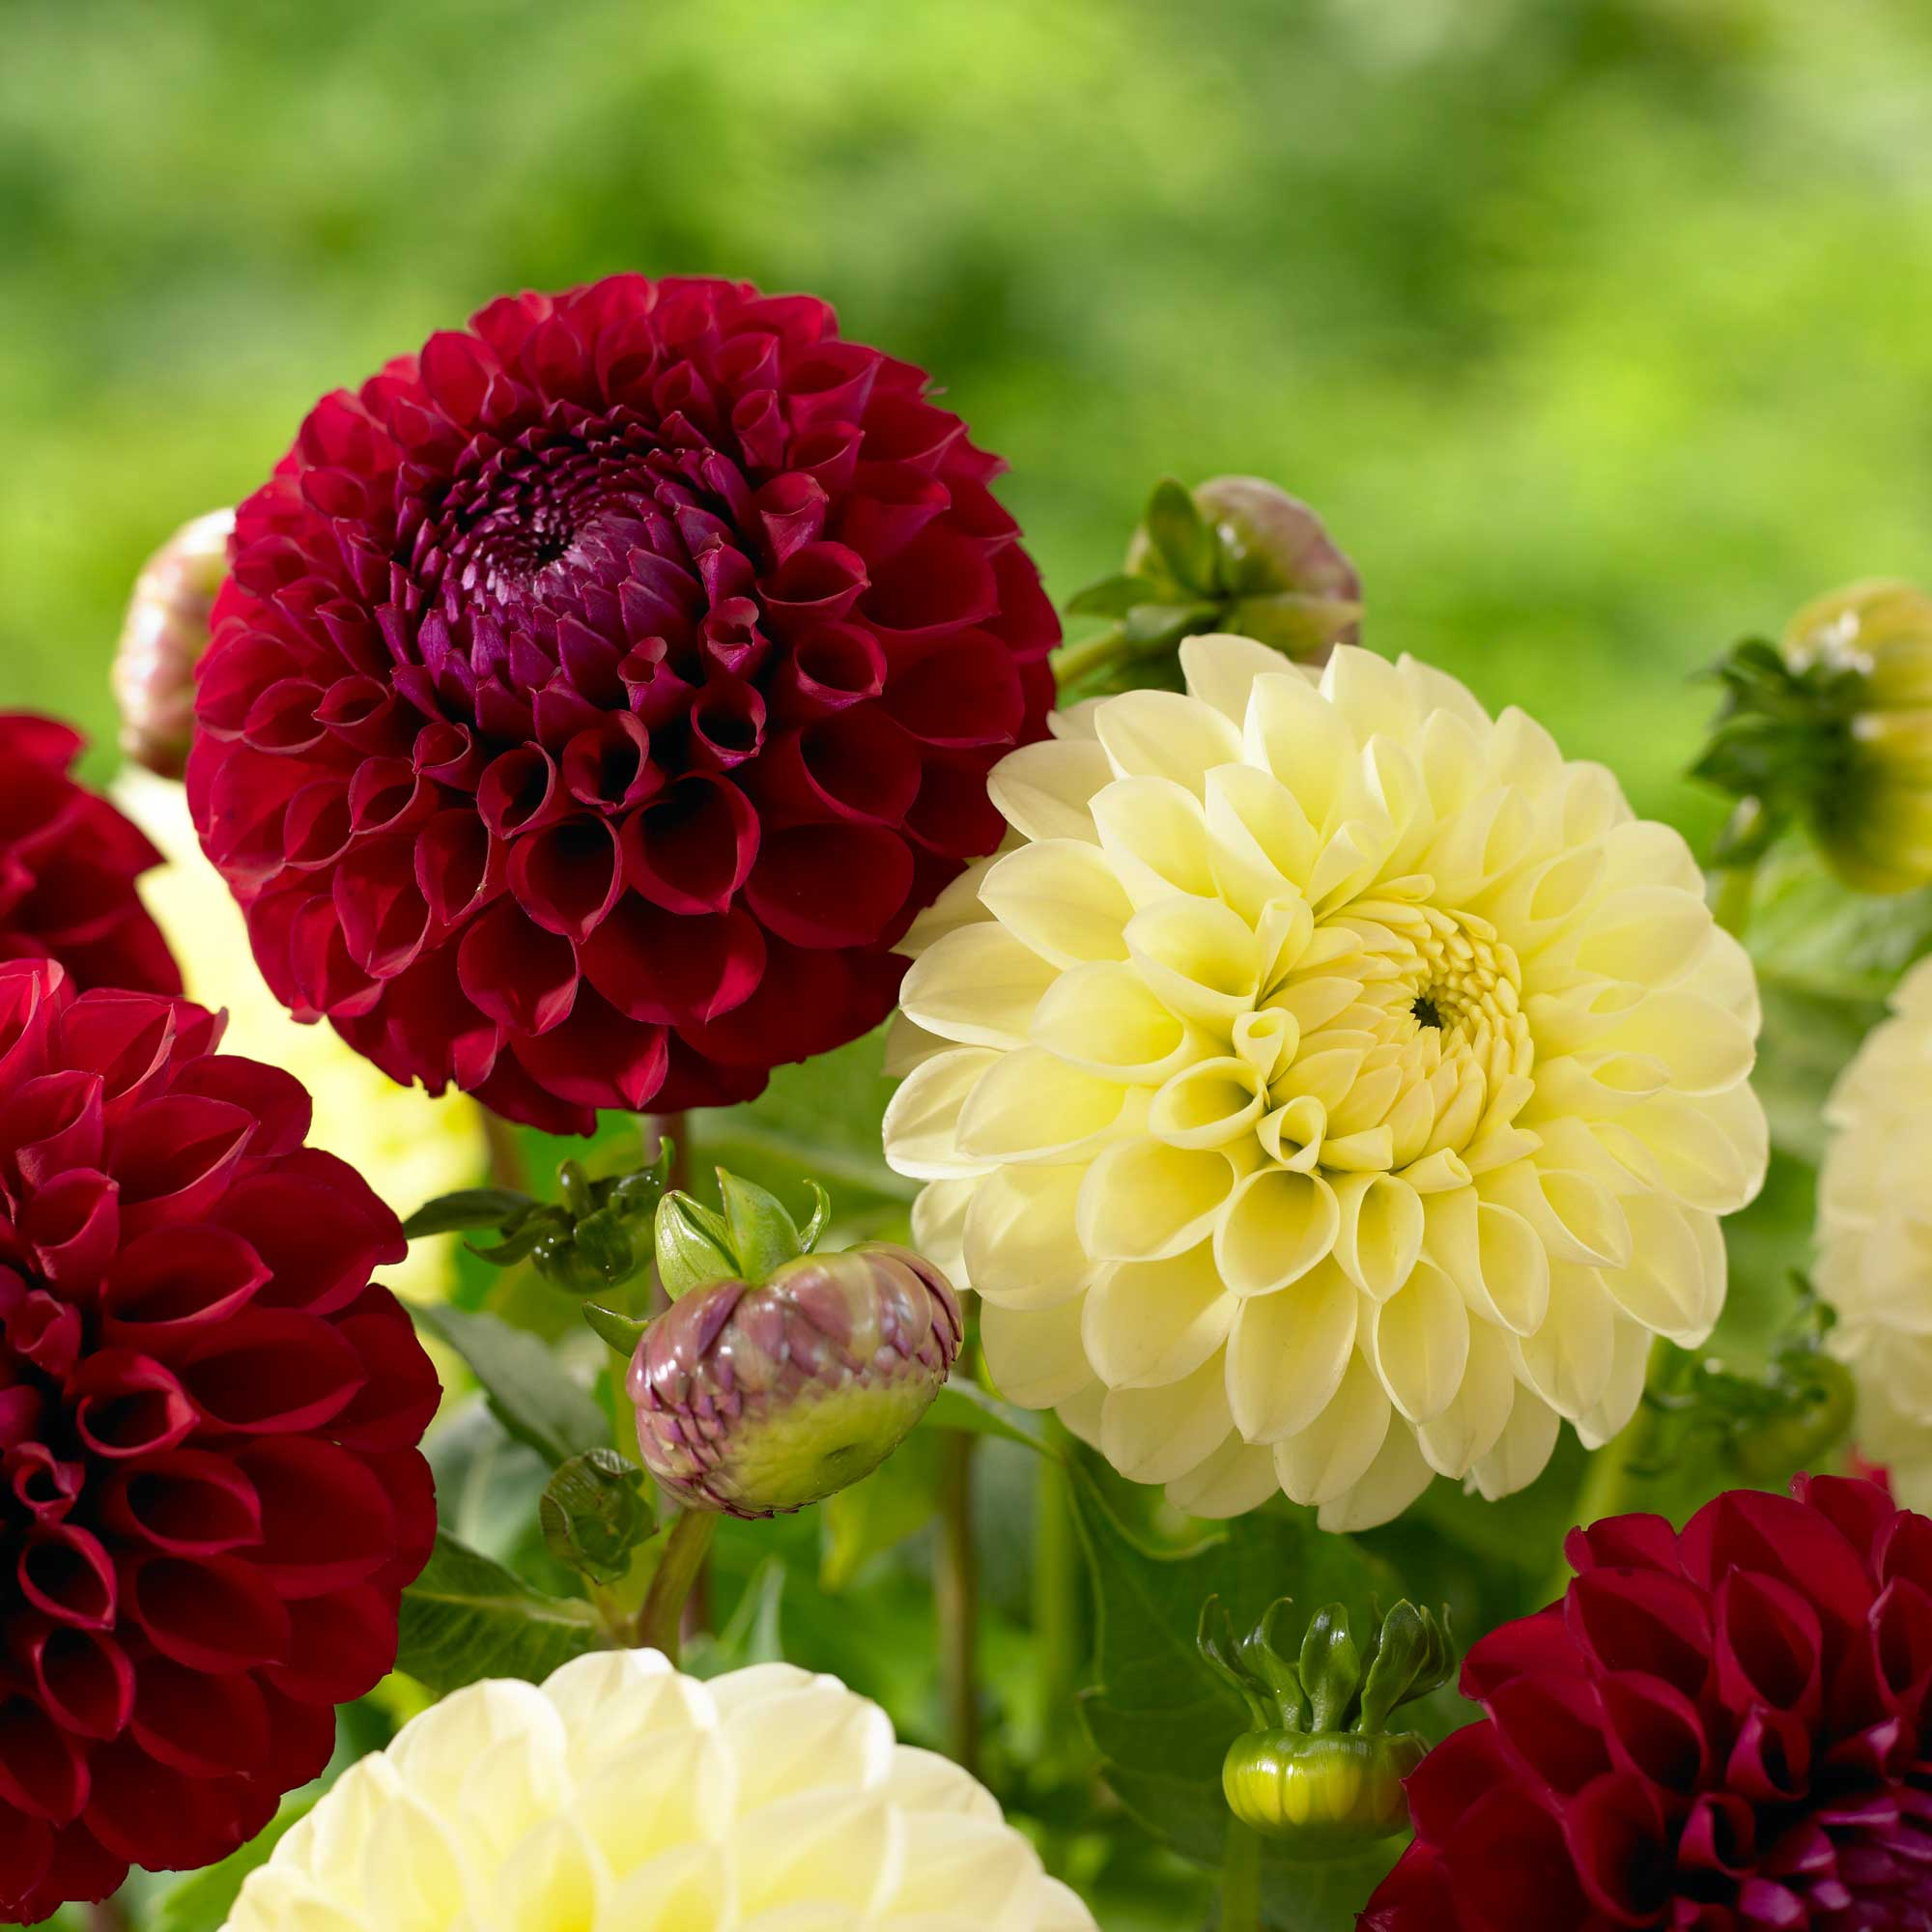 Know your dahlias flower styles and sizes longfield gardens dahlia ball pom pong izmirmasajfo